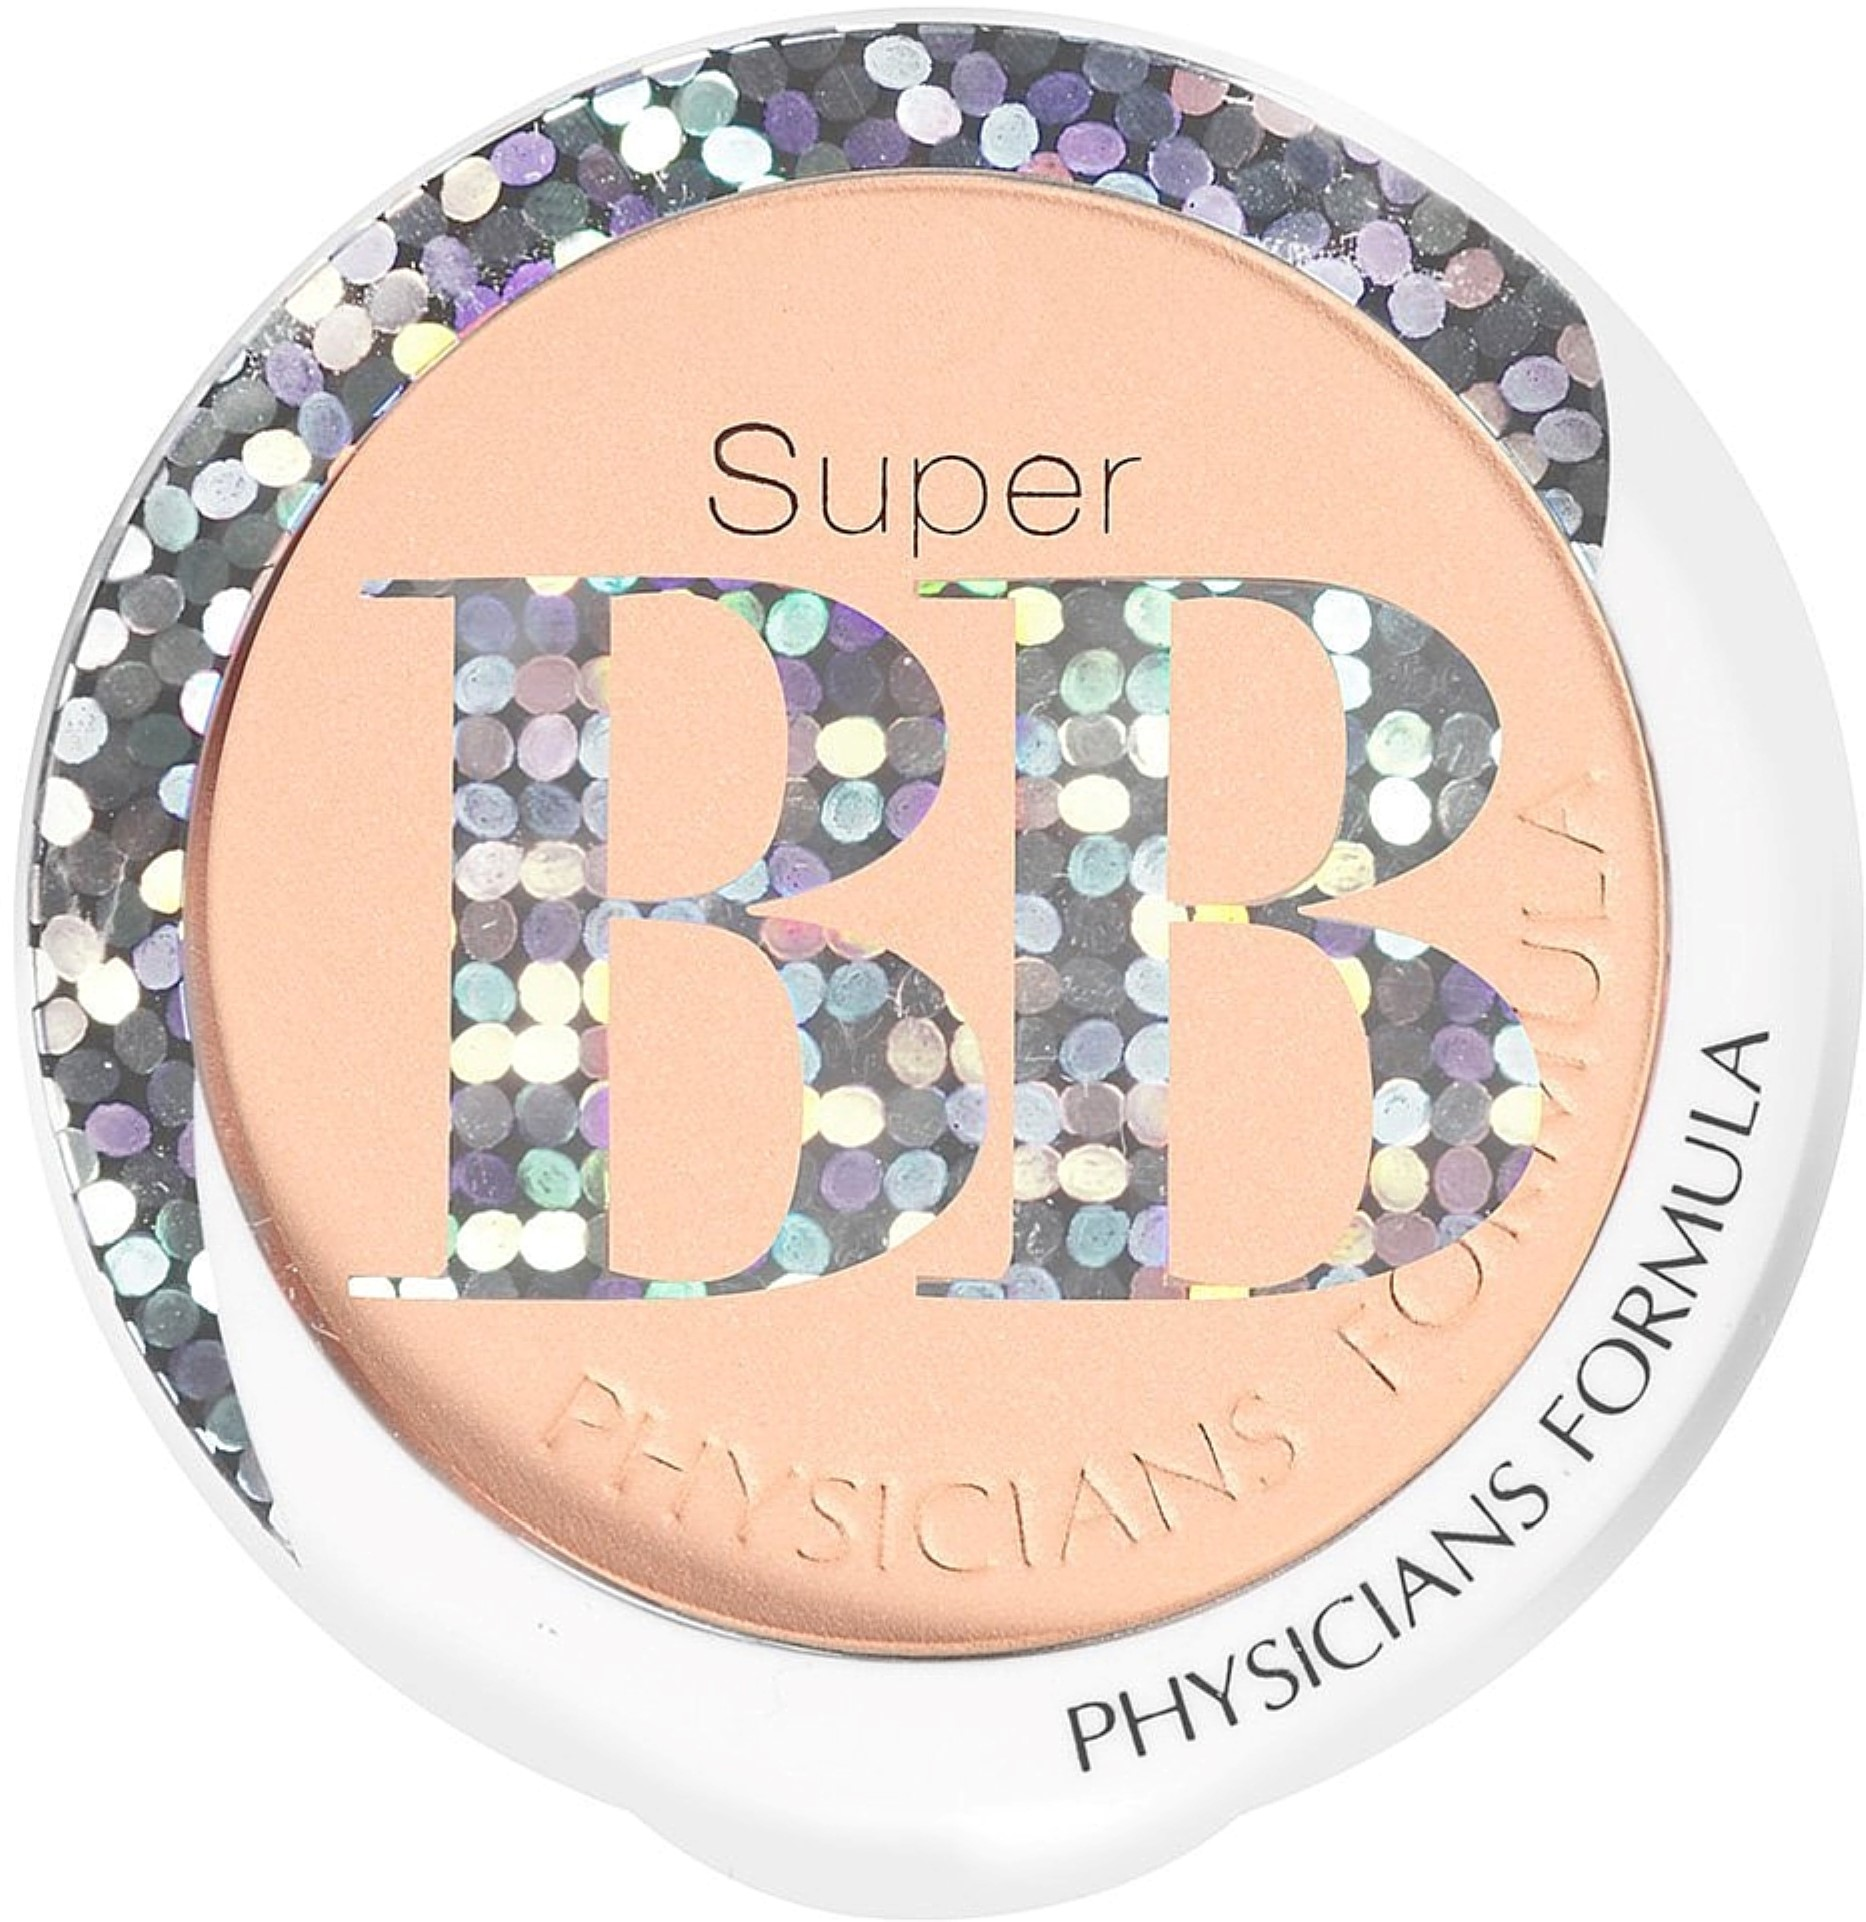 Physician's Formula Super BB All-in-1 Beauty Balm Powder, Light/Medium [7836] 0.29 oz (Pack of 4)